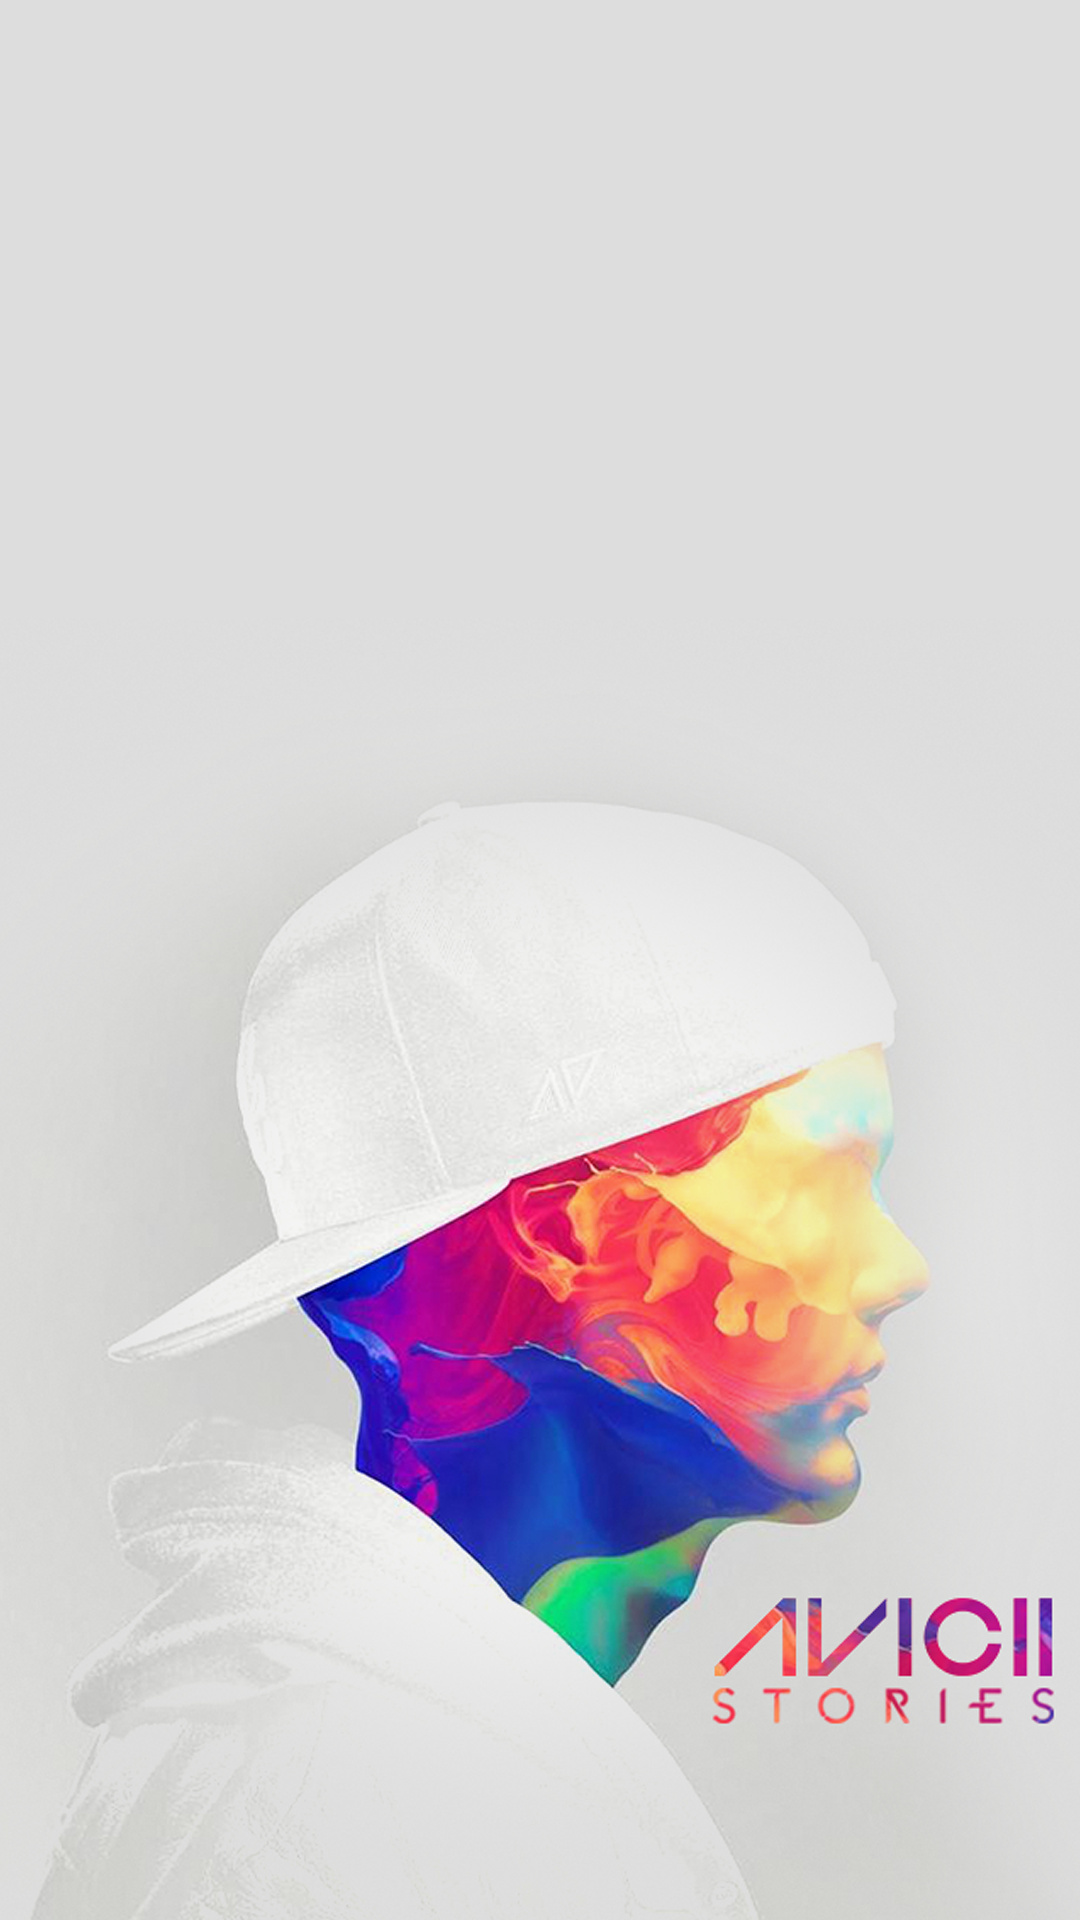 iPhone wallpaper avicii 1 3Wallpapers : notre sélection de fonds d'écran du 23/04/2018